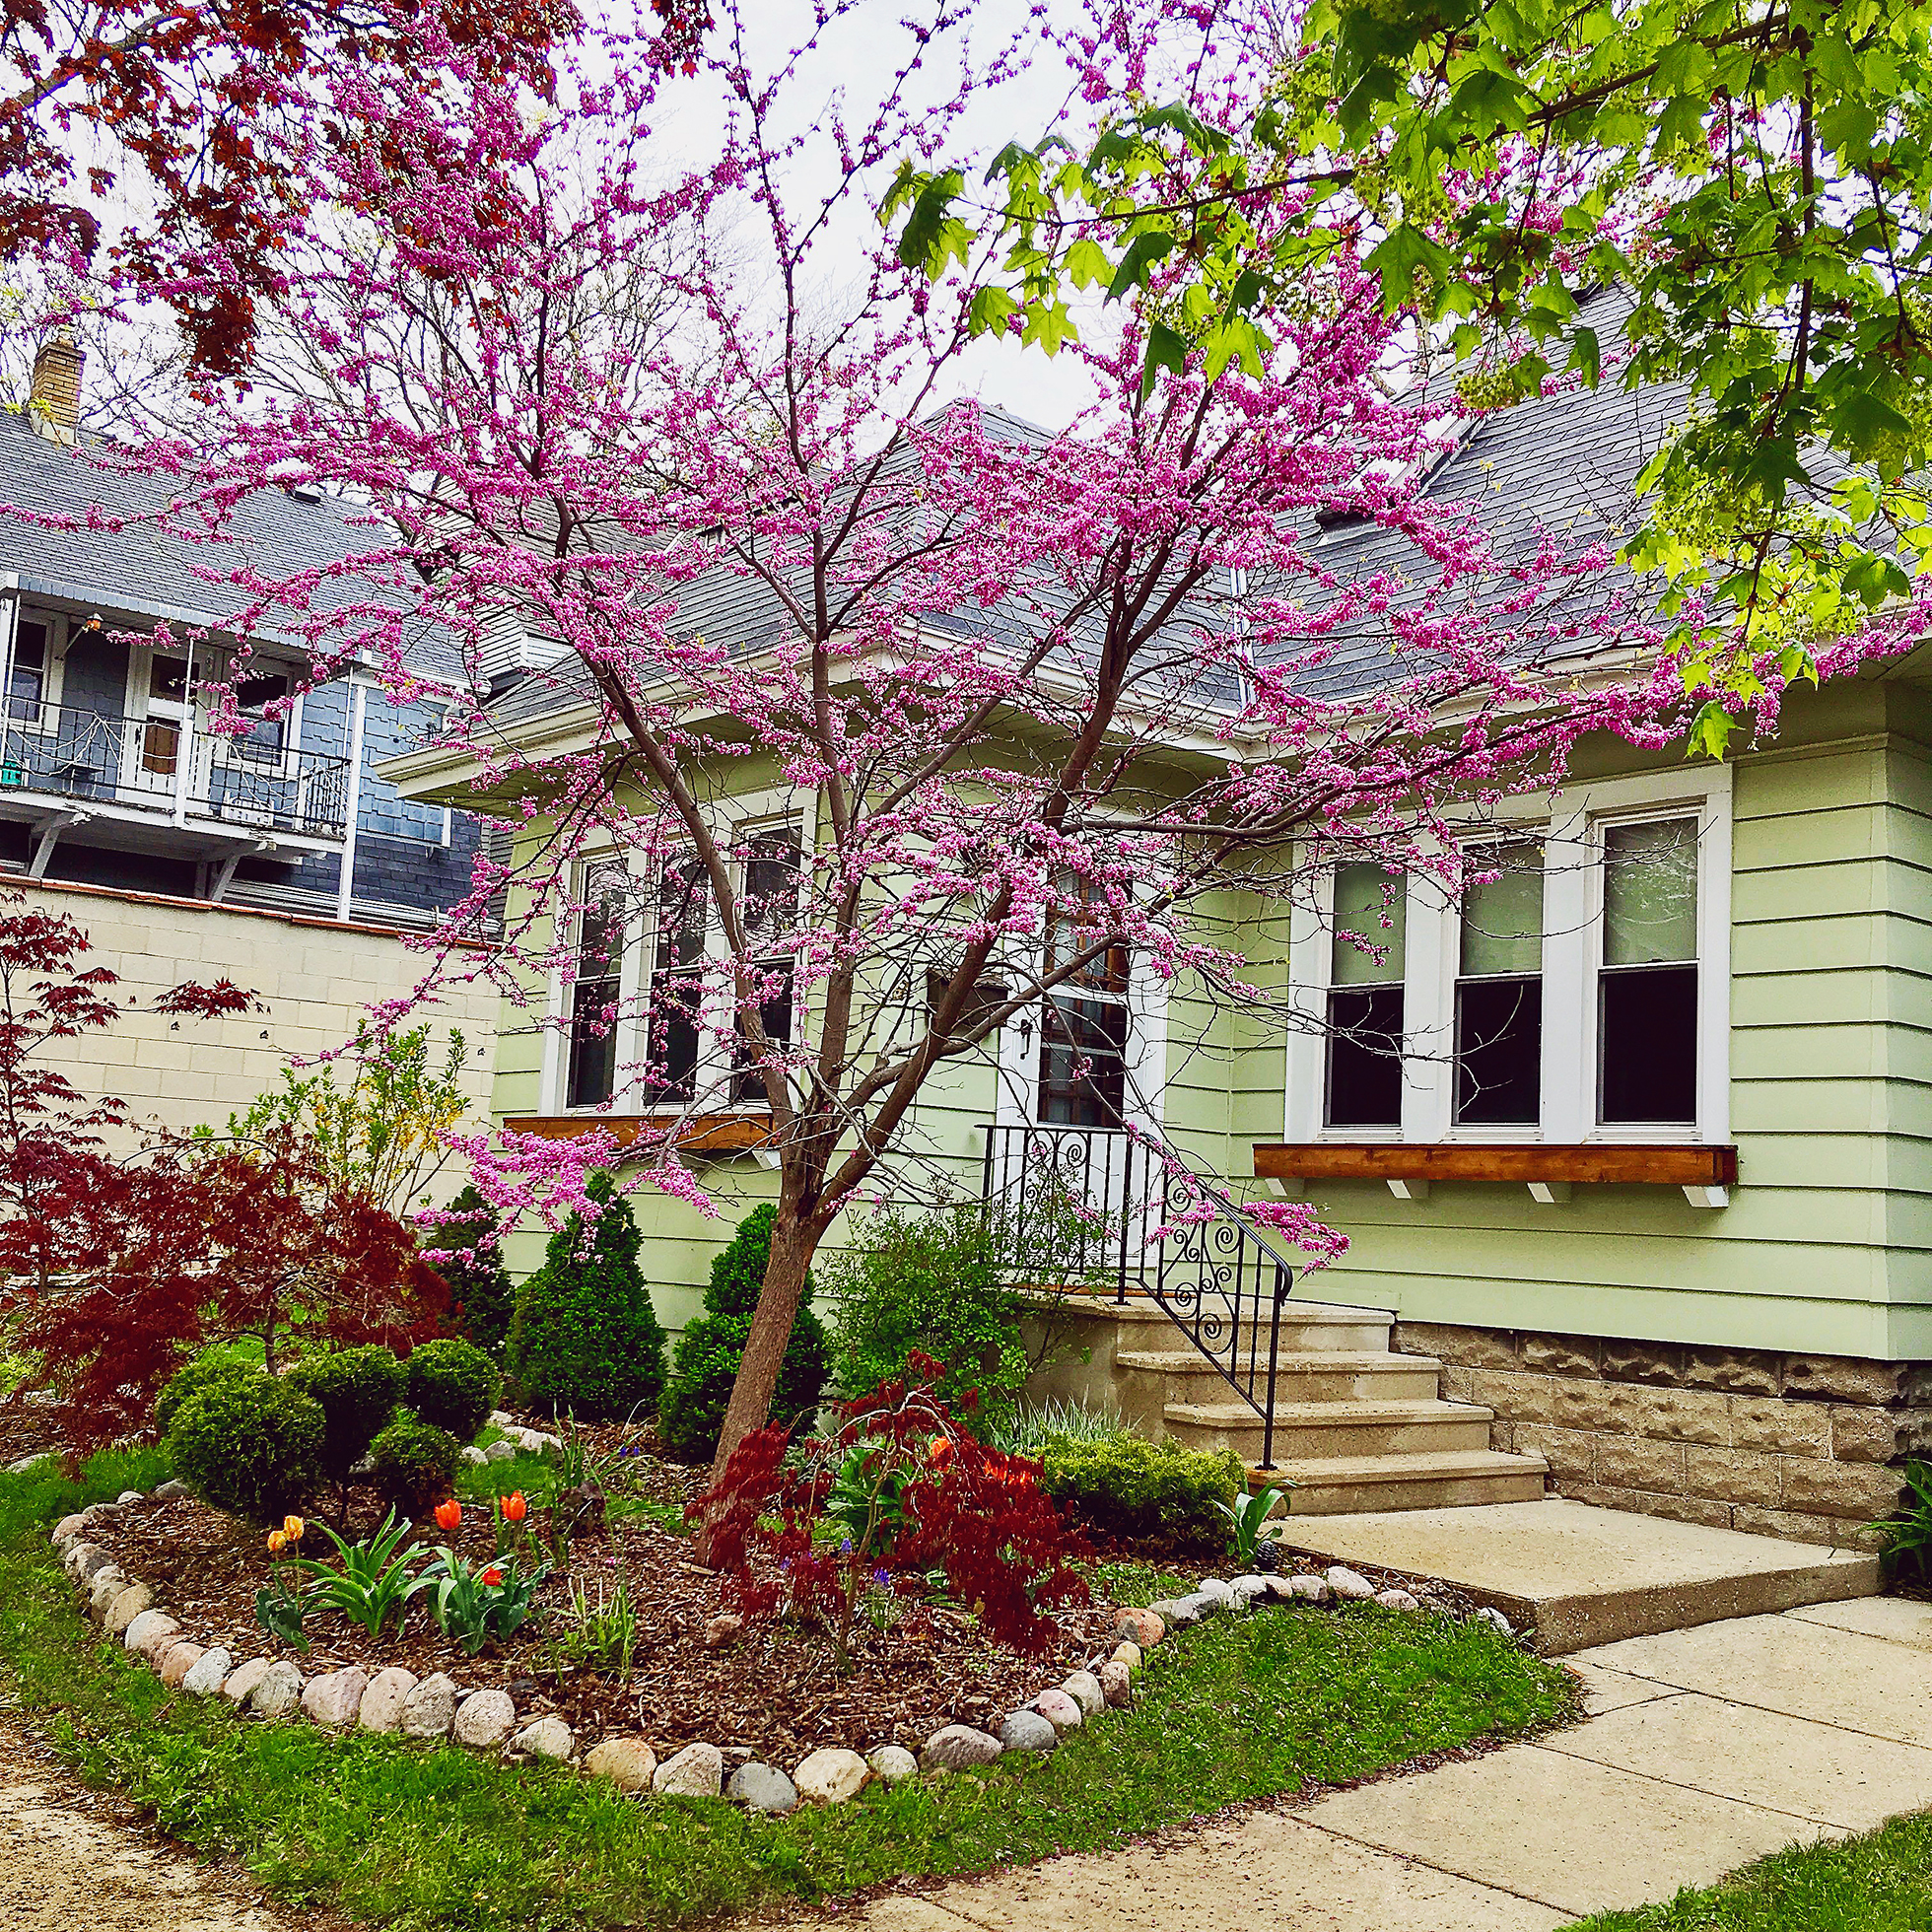 Red bud fernwood tree in front of a green bungalow